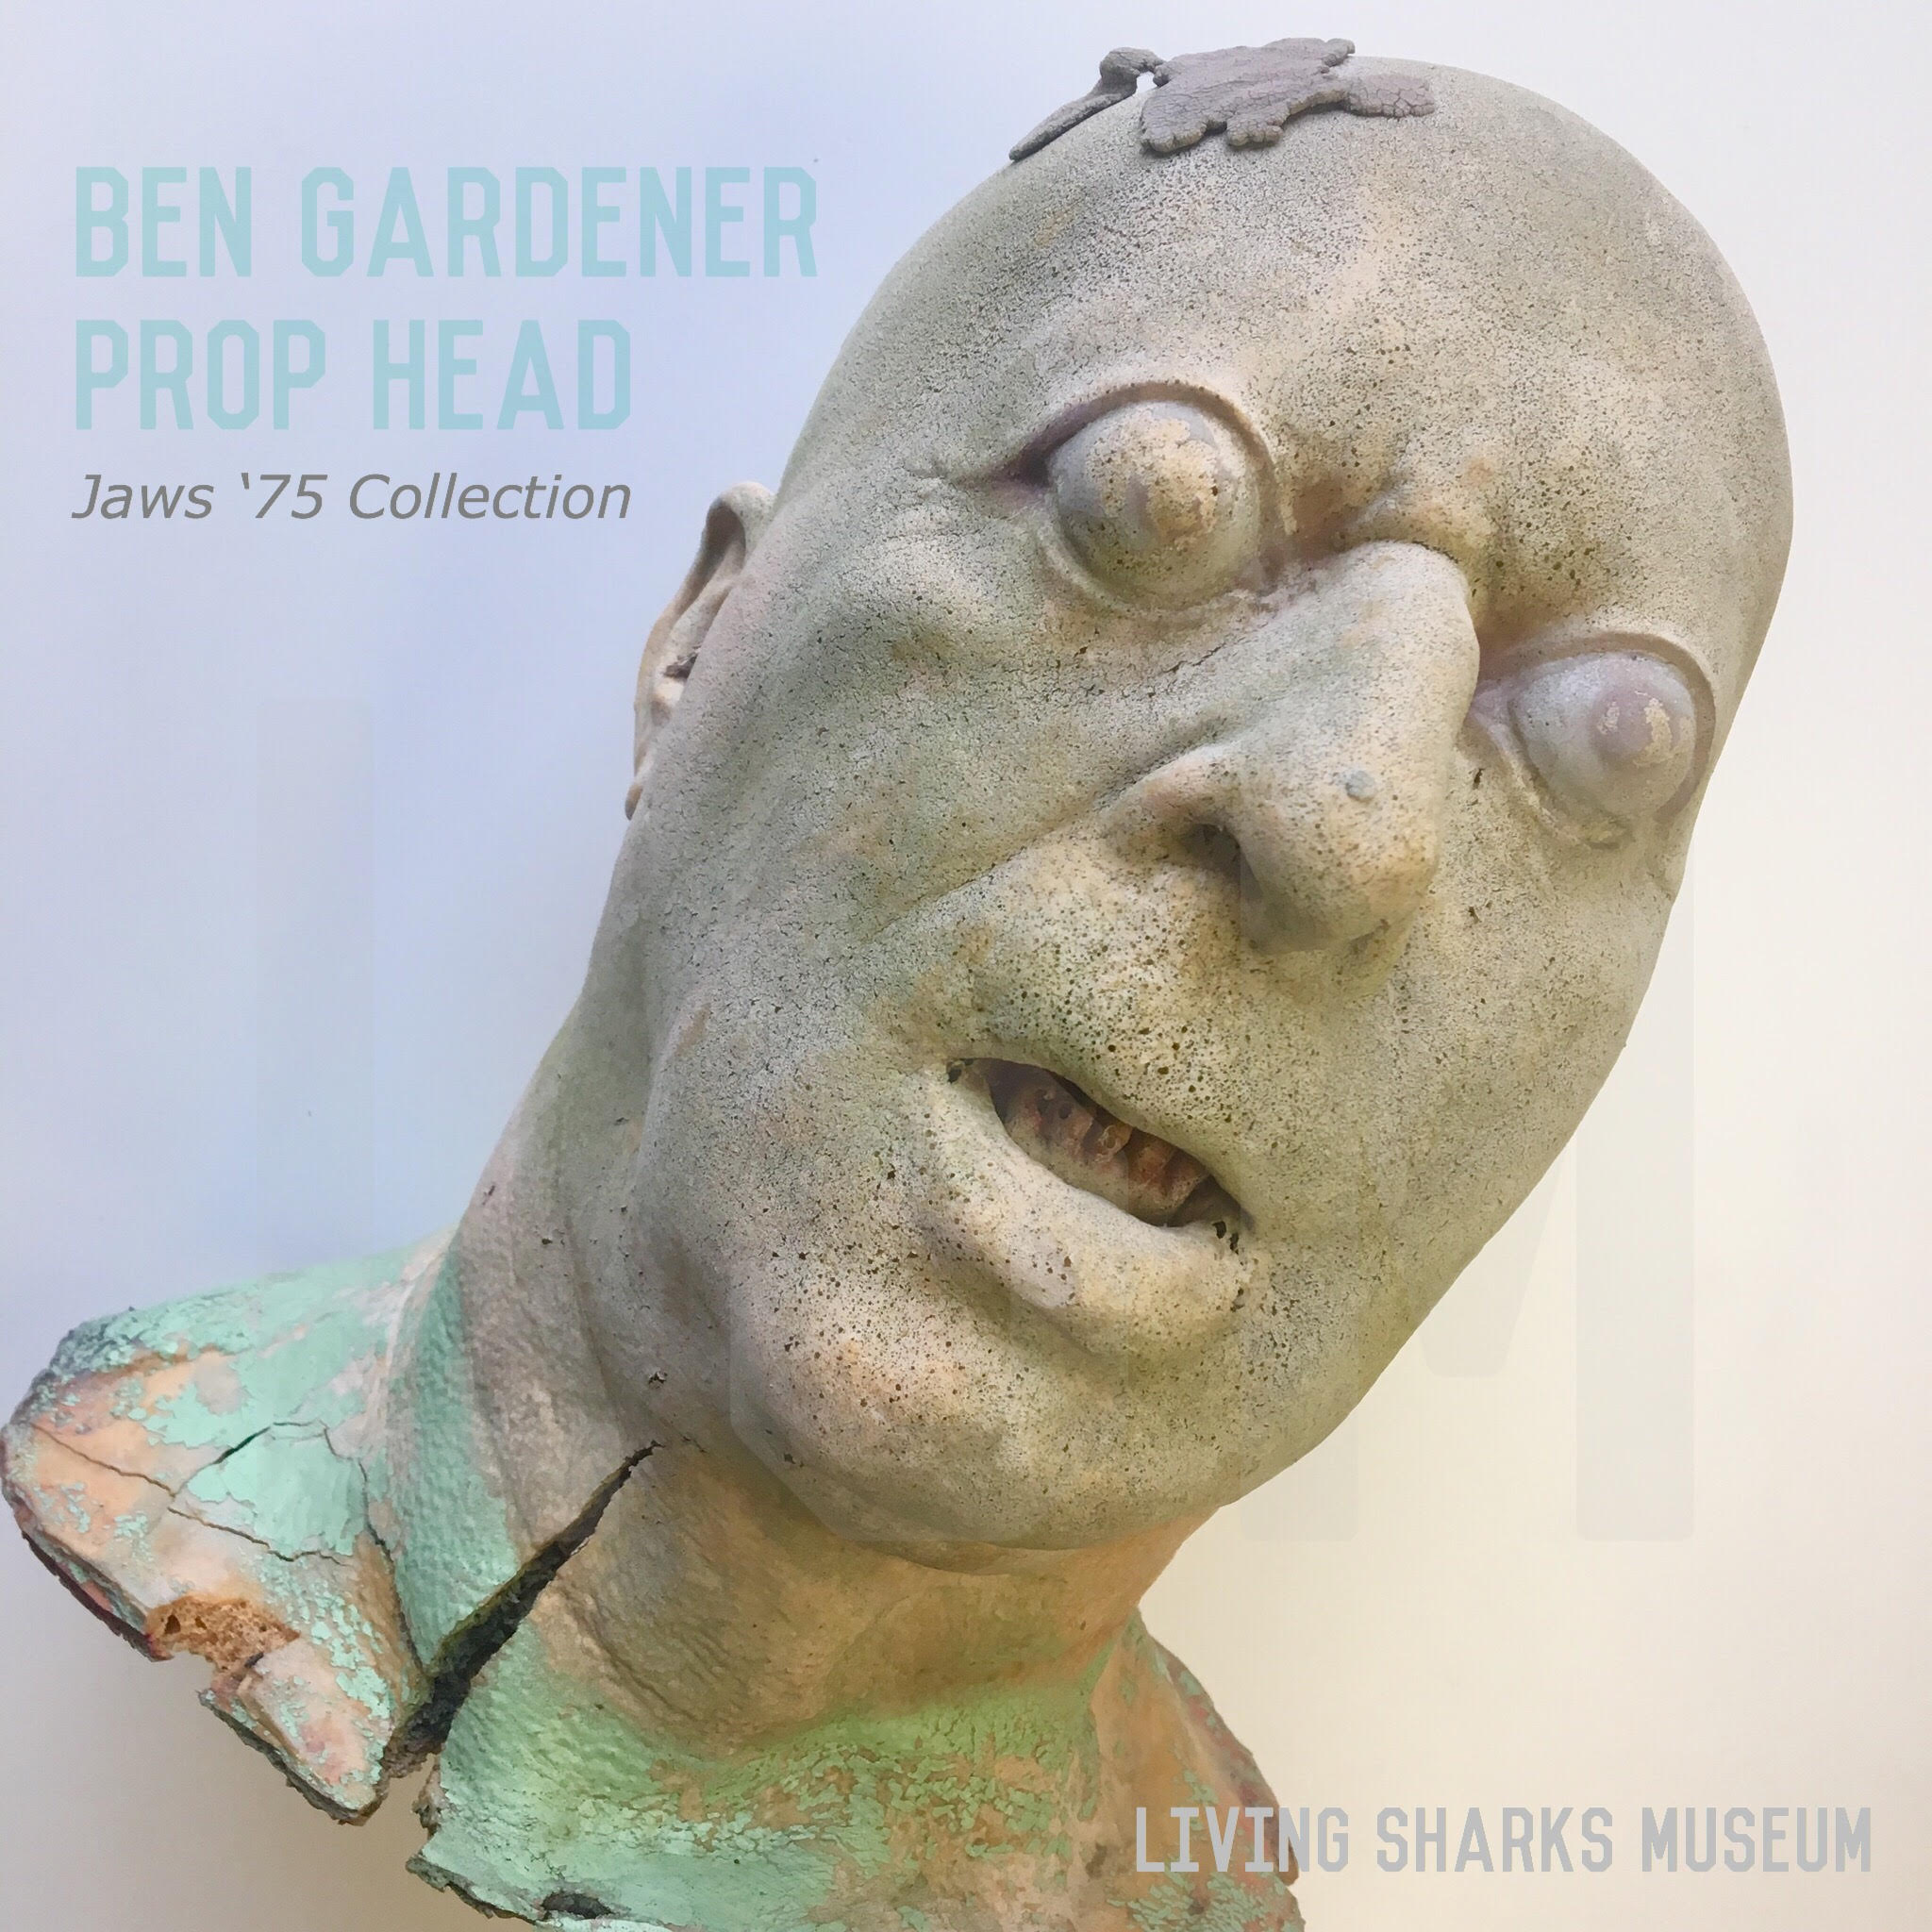 BEN GARDNER PROP - Famous for the climactic jumpscare successfully implemented by Jaws editor Verna Fields, the head of fisherman Ben Gardner reveals itself as Hooper investigates his sharkwrecked and sunken vessel. Molded to match actor Craig Kingsbury, this head was pulled from the original mold fashioned by propmaster Werner Keppler. Six months after the film had wrapped, director Steven Spielberg paid $3000 of his own money to shoot the scene underwater in a pool in Encino California, behind the same residence Fields was editing the film._____________________BEN GARDNER PROP HEADJaws 1975Private Collection - Keith M. Cowley